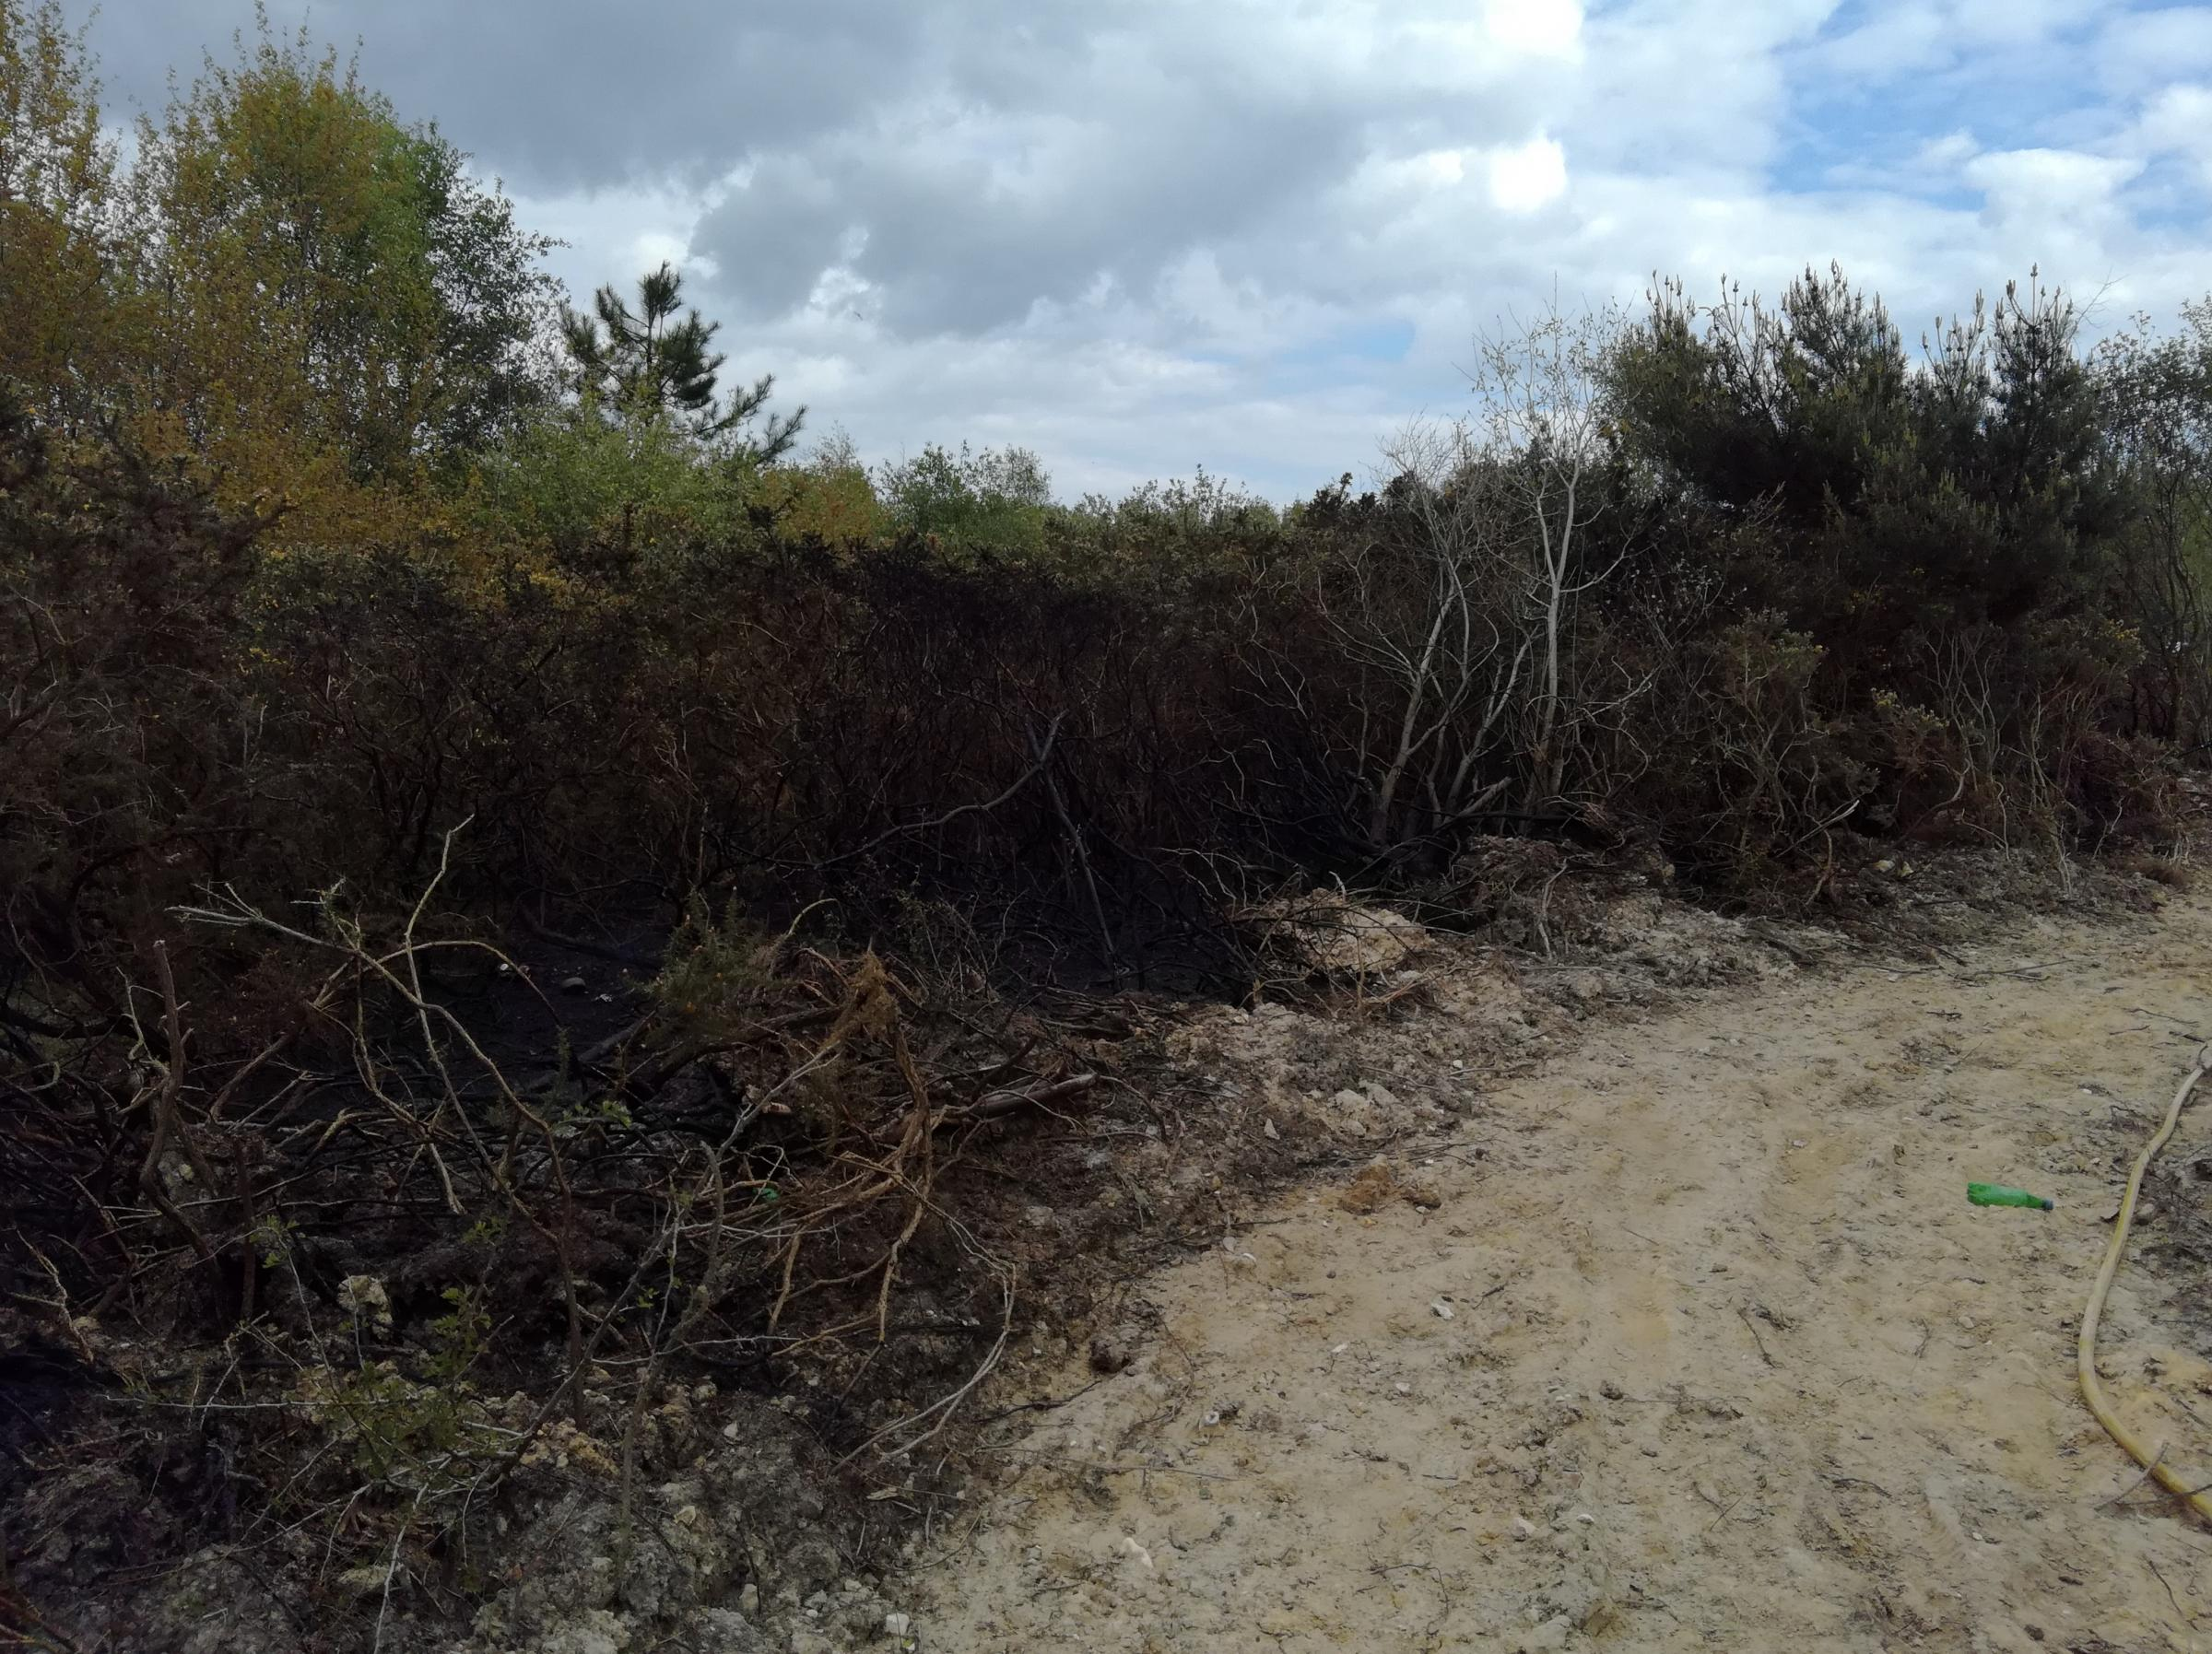 Police are hunting people who started fires on scrubland near Sterte Industrial Estate on May 5 and 6